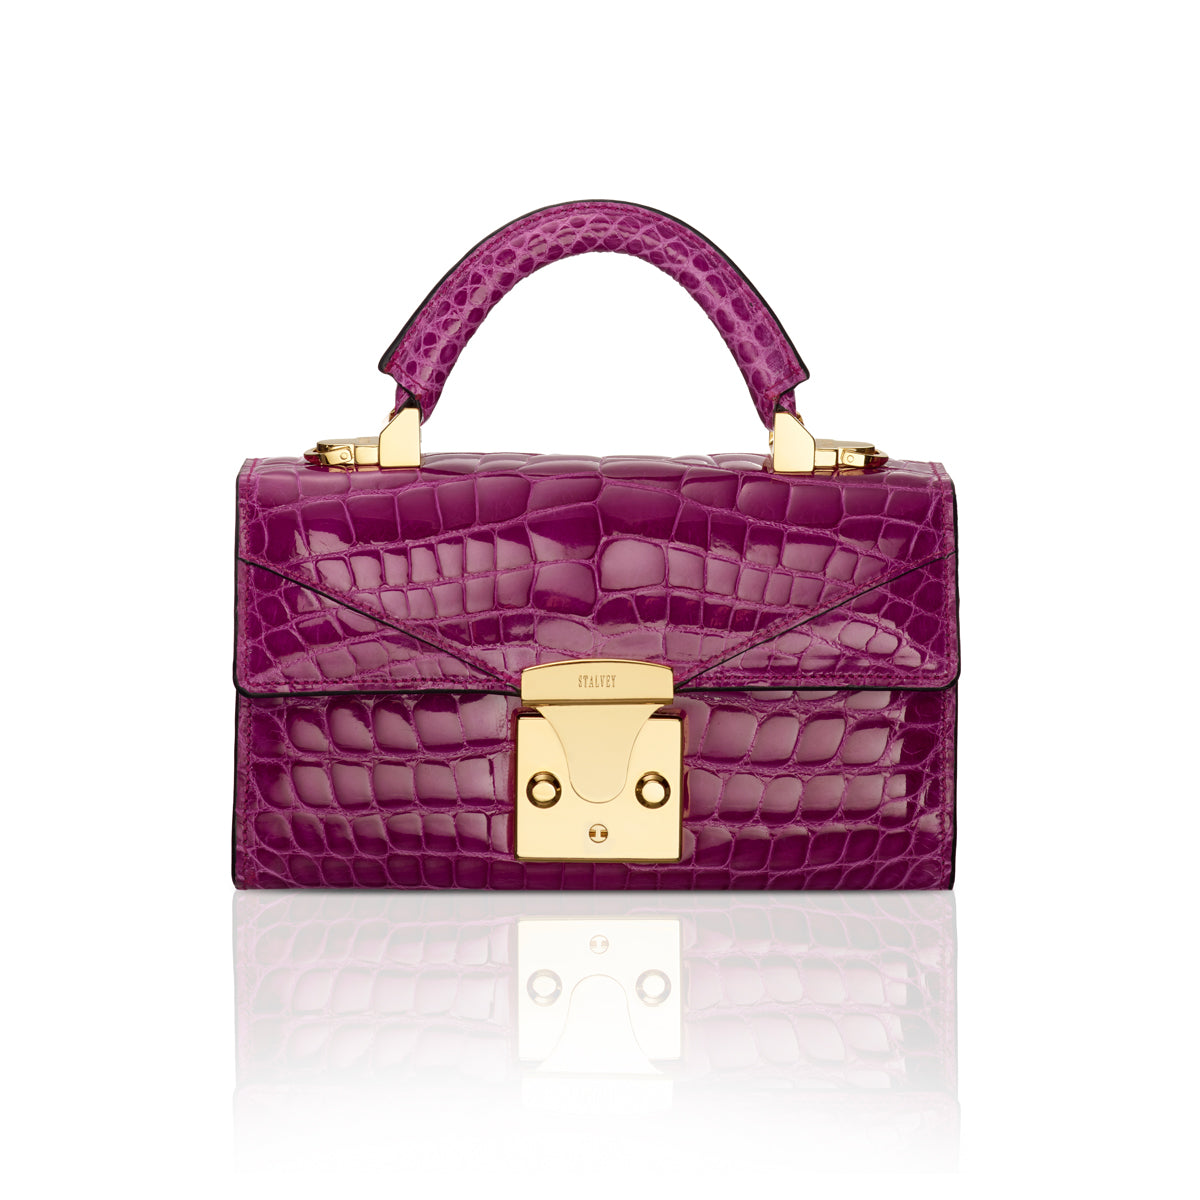 Top Handle 2.0 Mini - Magenta Alligator